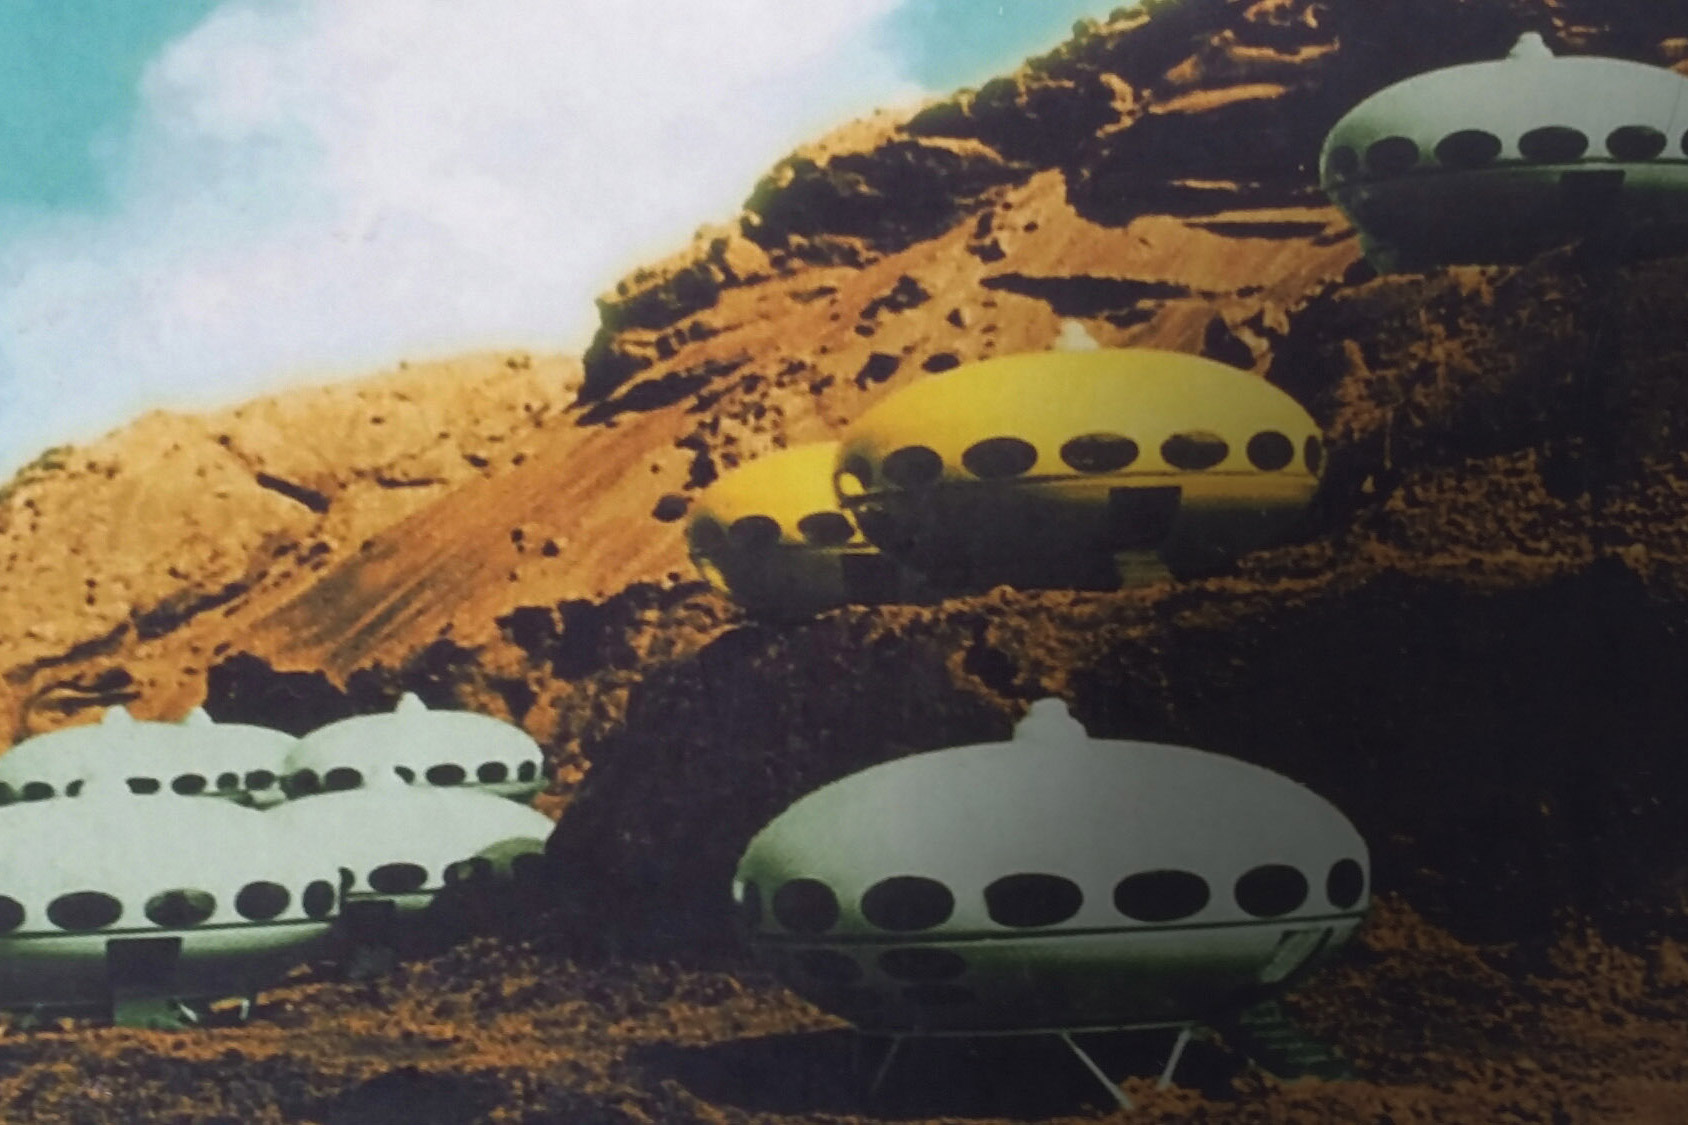 a still from futuro, spaceship oval residencies set against an arid landscape